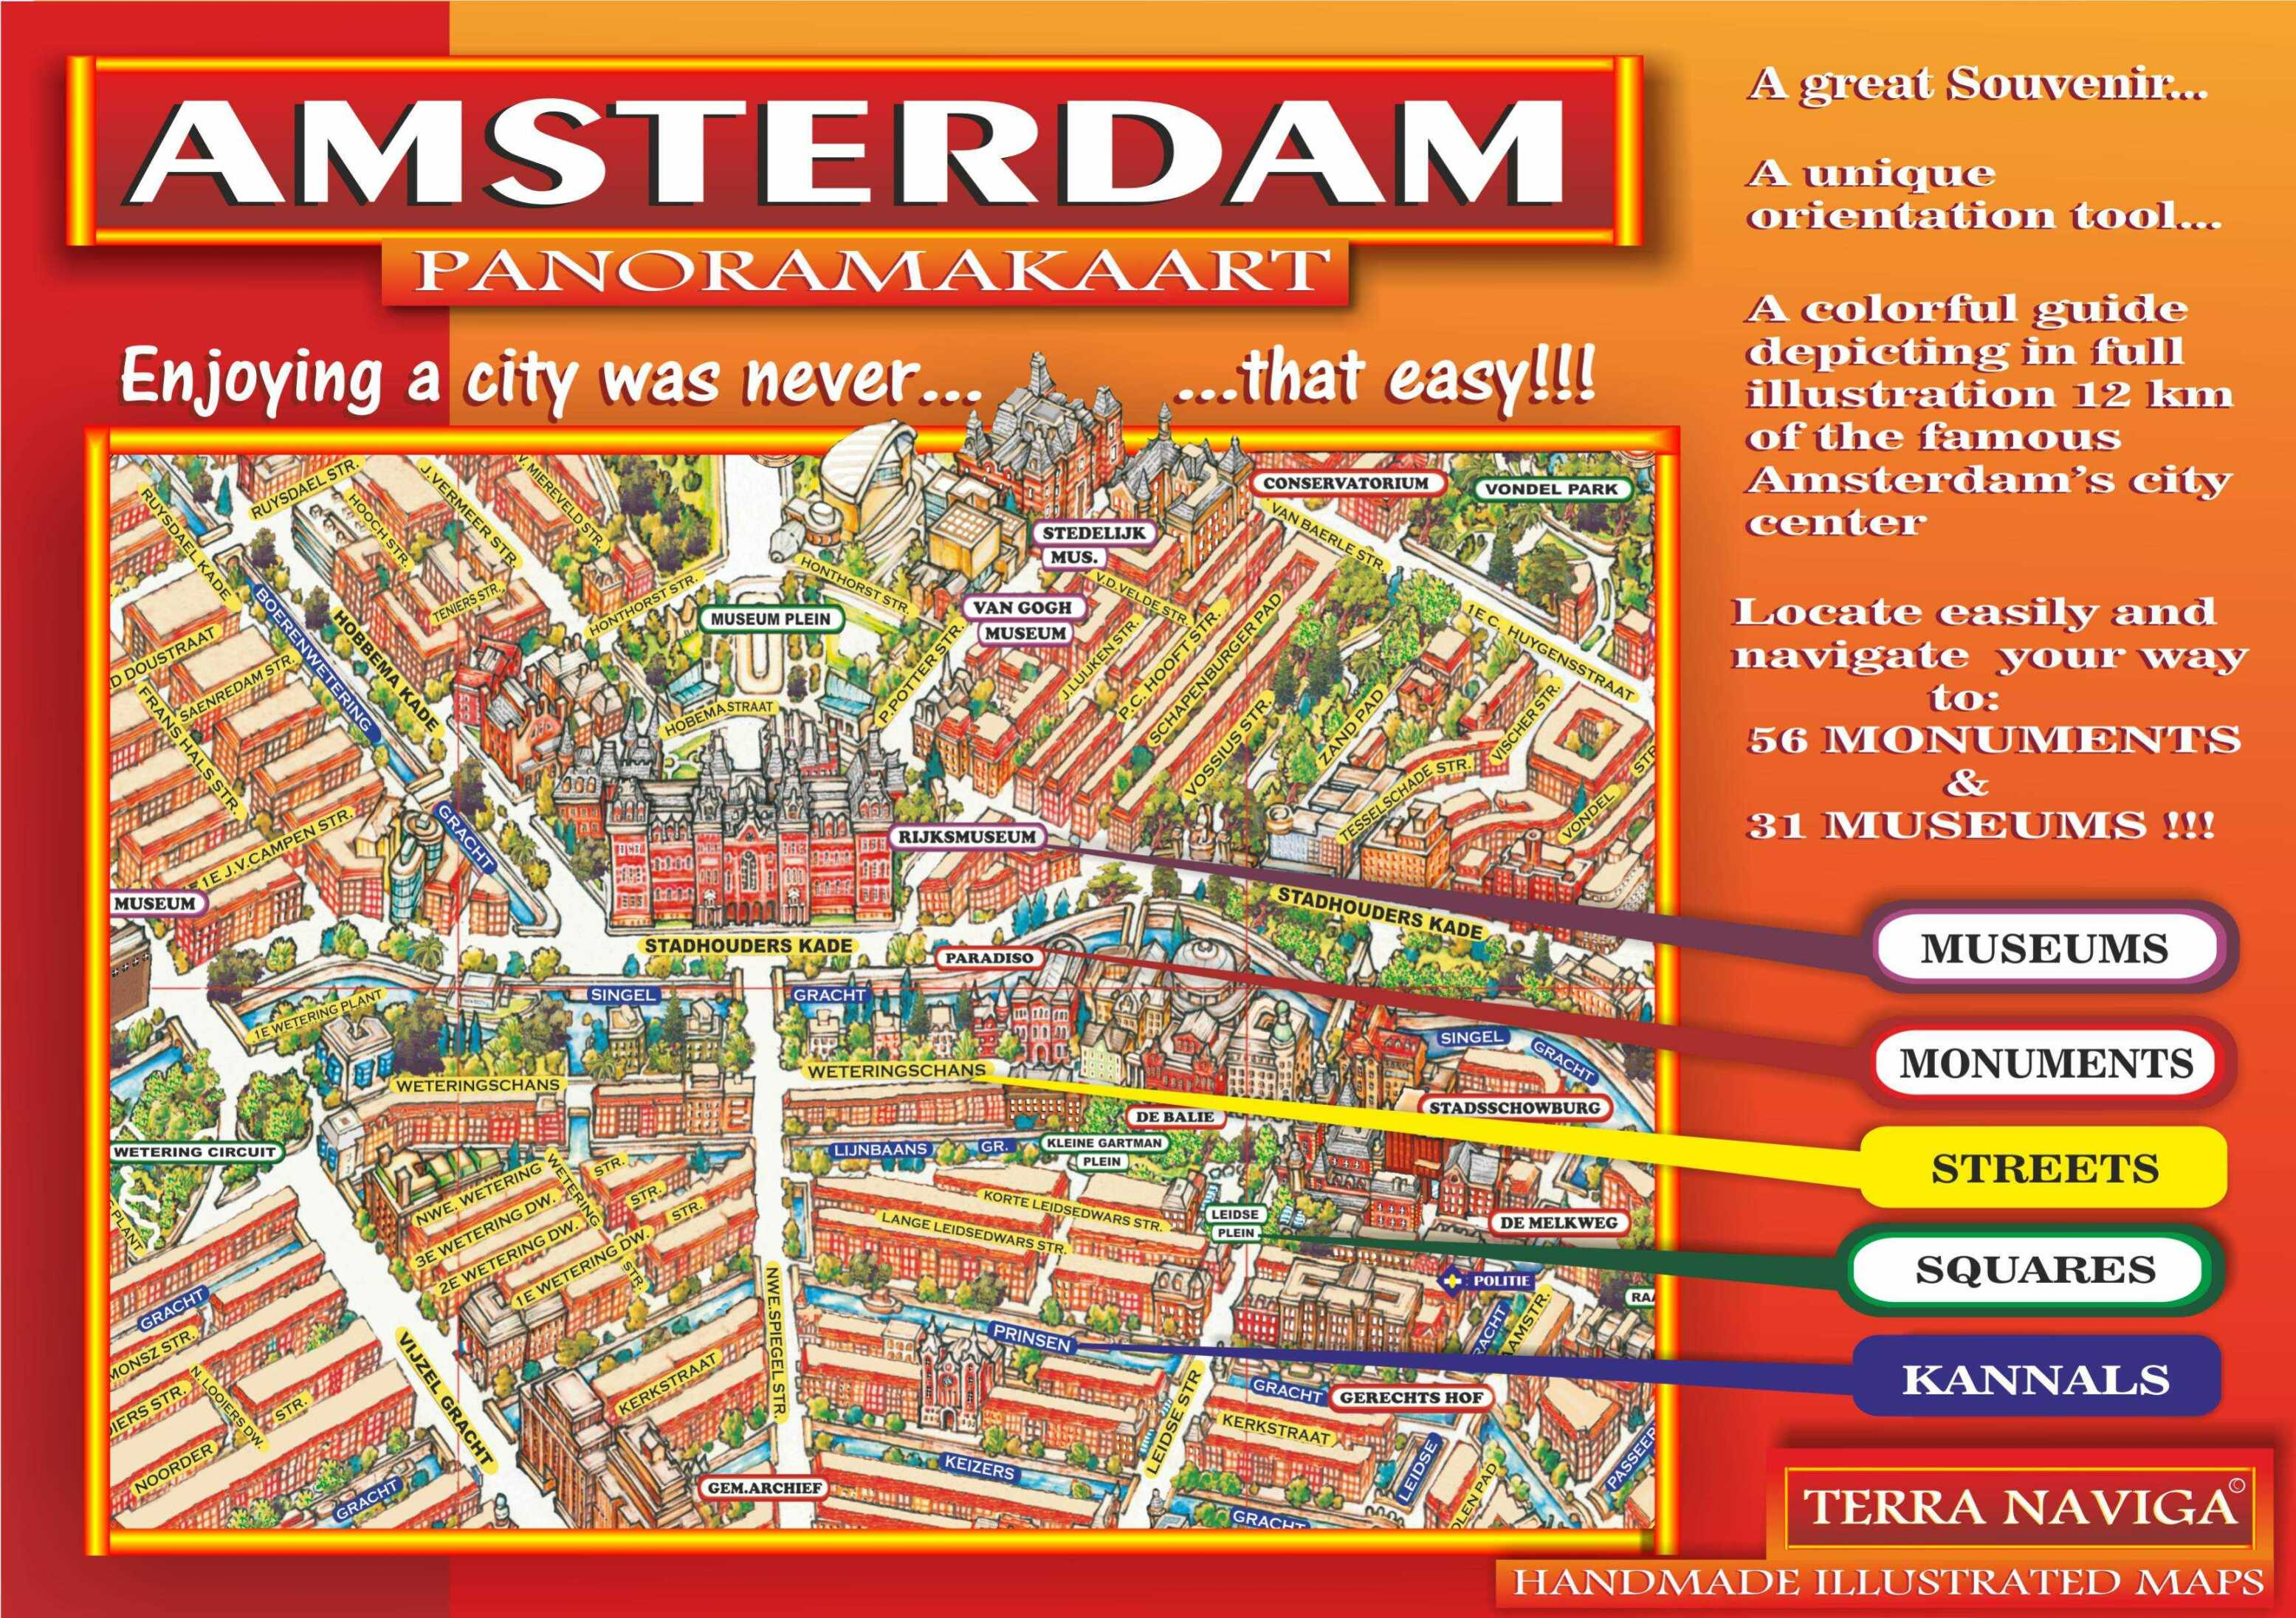 AMSTERDAM TECHNICAL DATA IMAGE